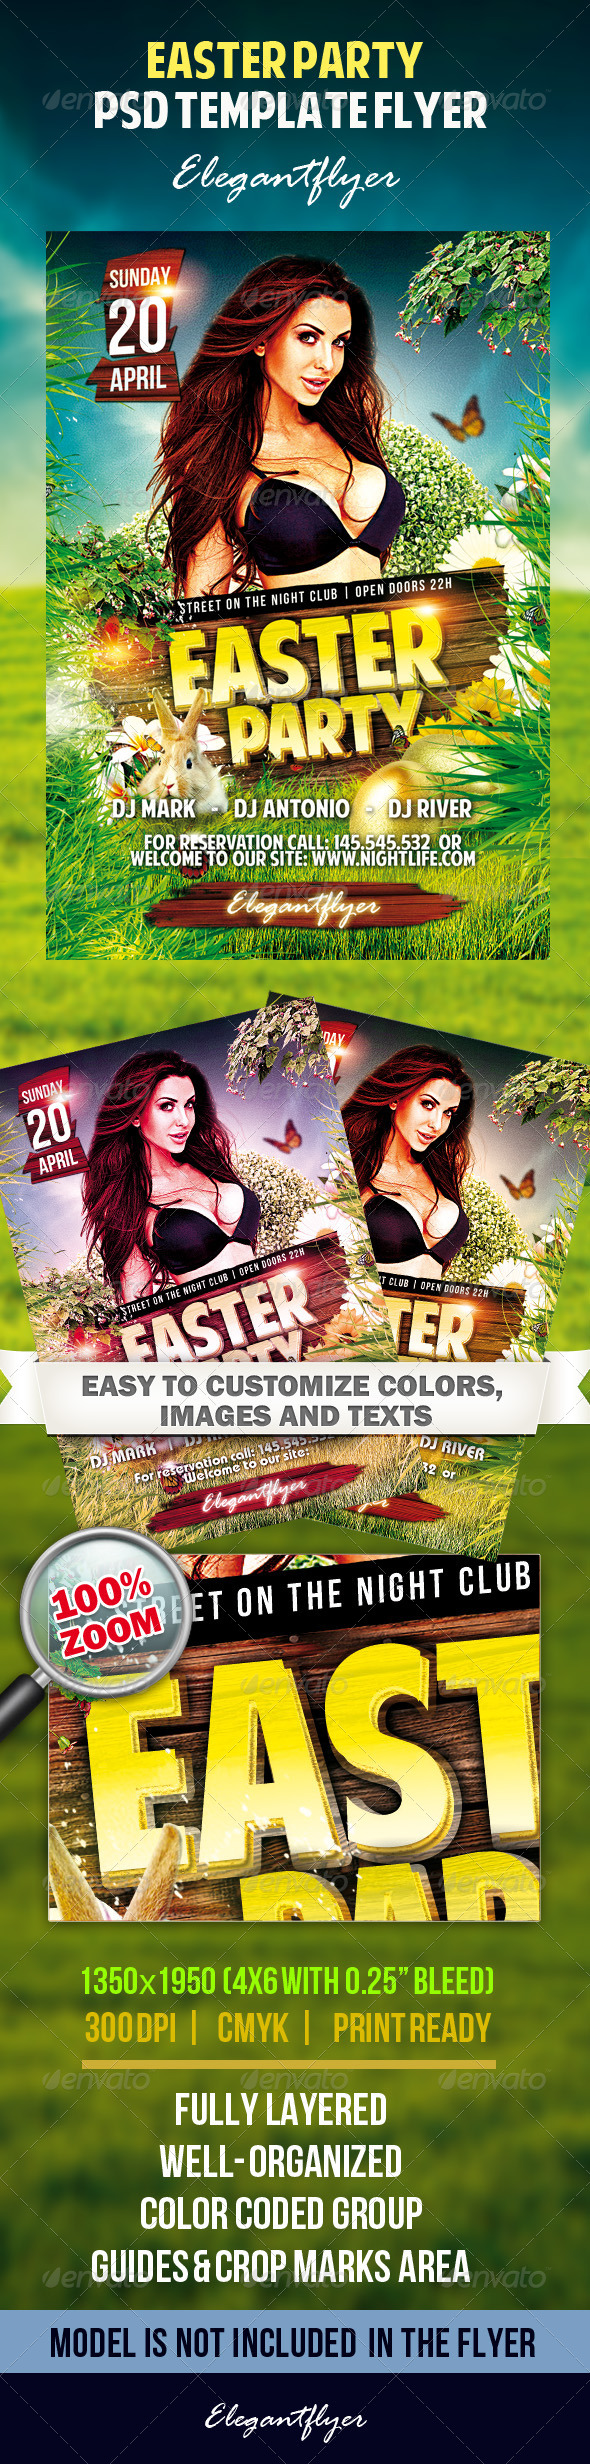 GraphicRiver Easter Party Flyer PSD Tempate 7215385